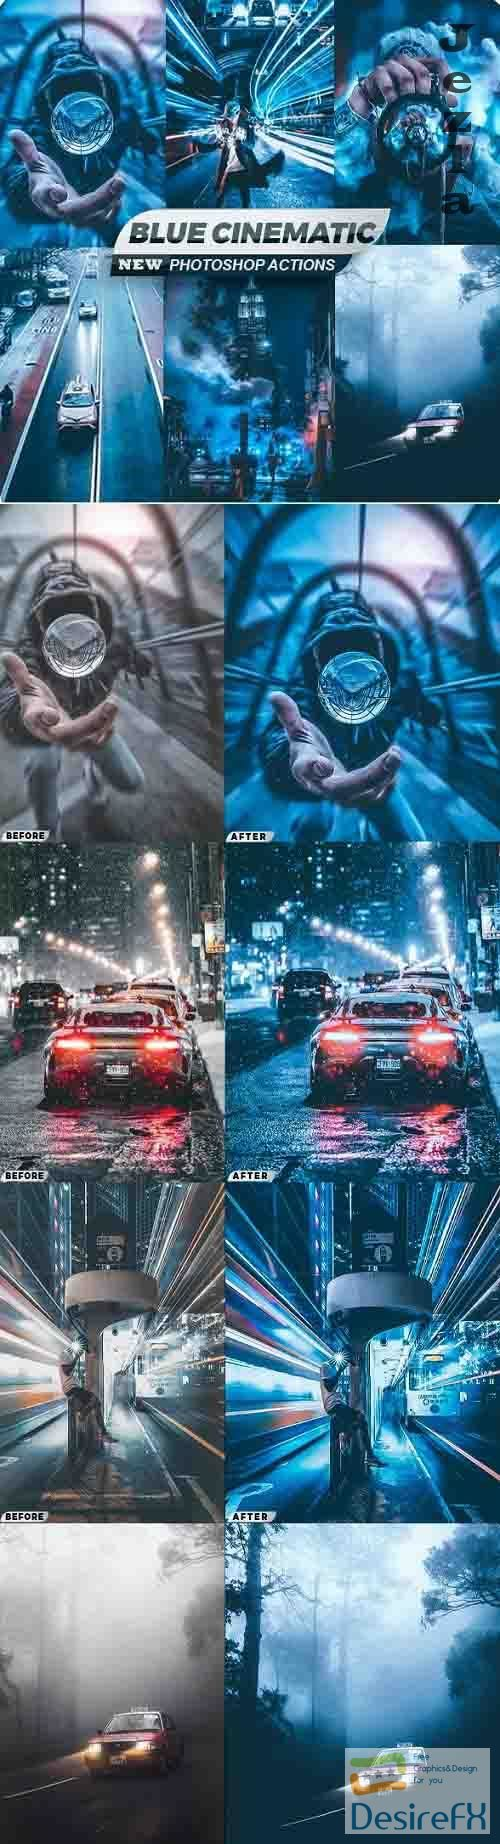 Blue Cinematic City Photoshop Actions 26544127